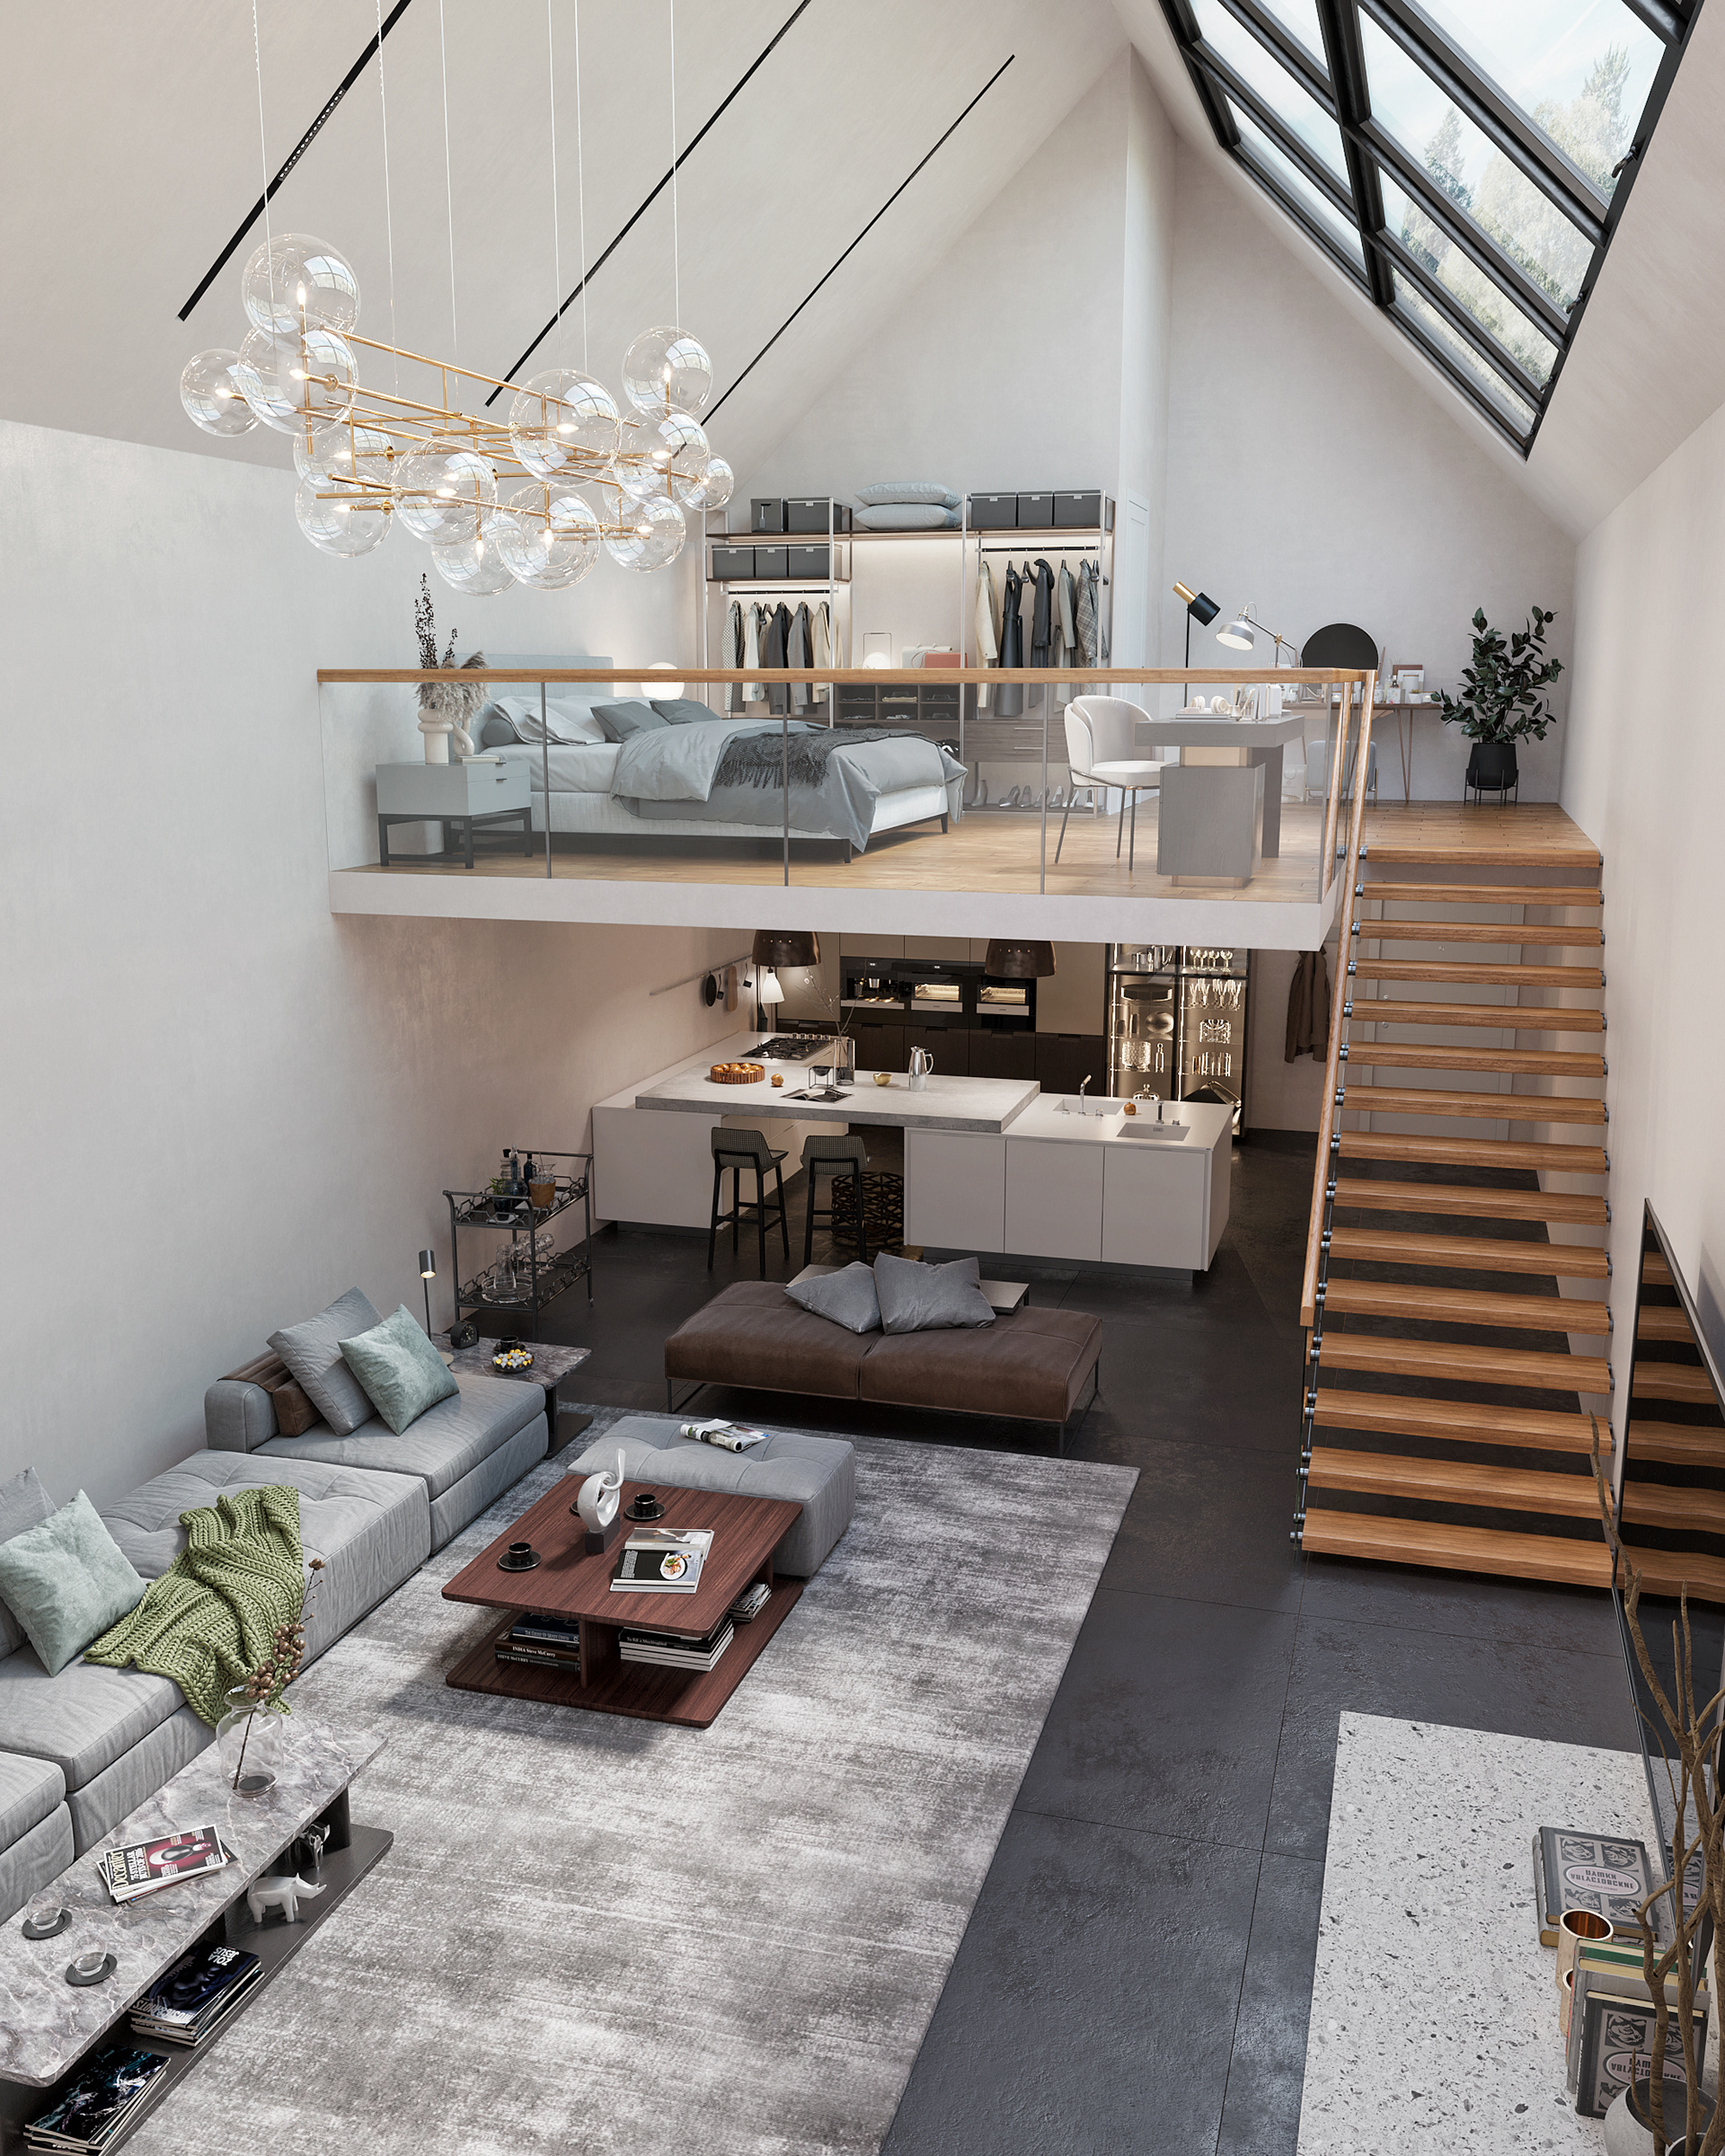 Best Way To Use Your Small Space- Loft Home Ideas